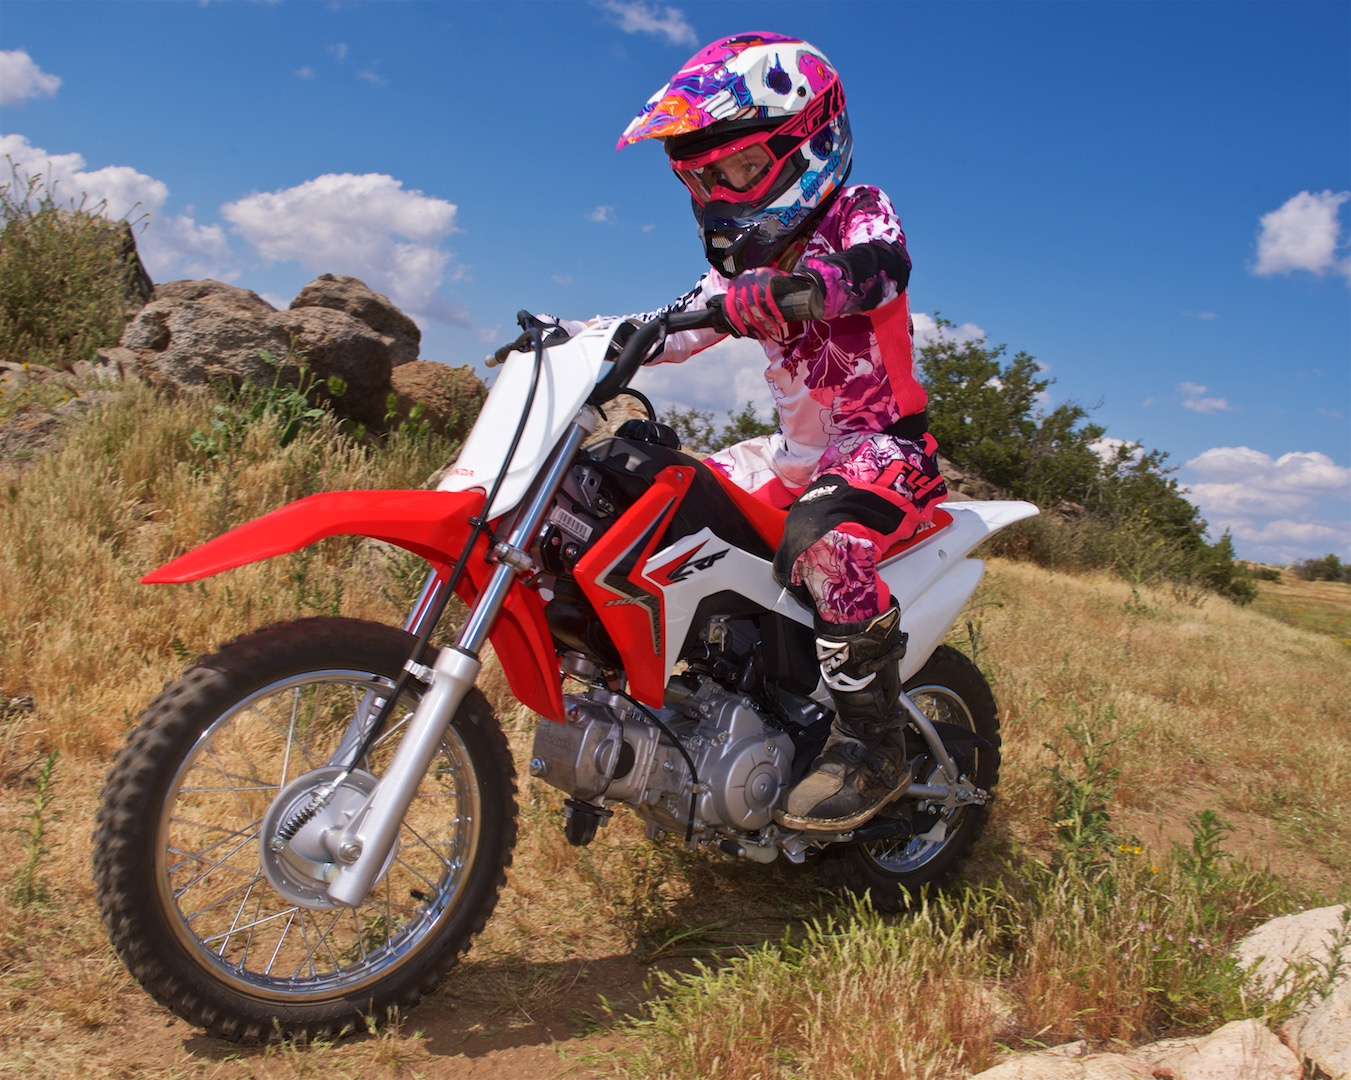 Honda crf100f review bing images for Honda crf110f top speed